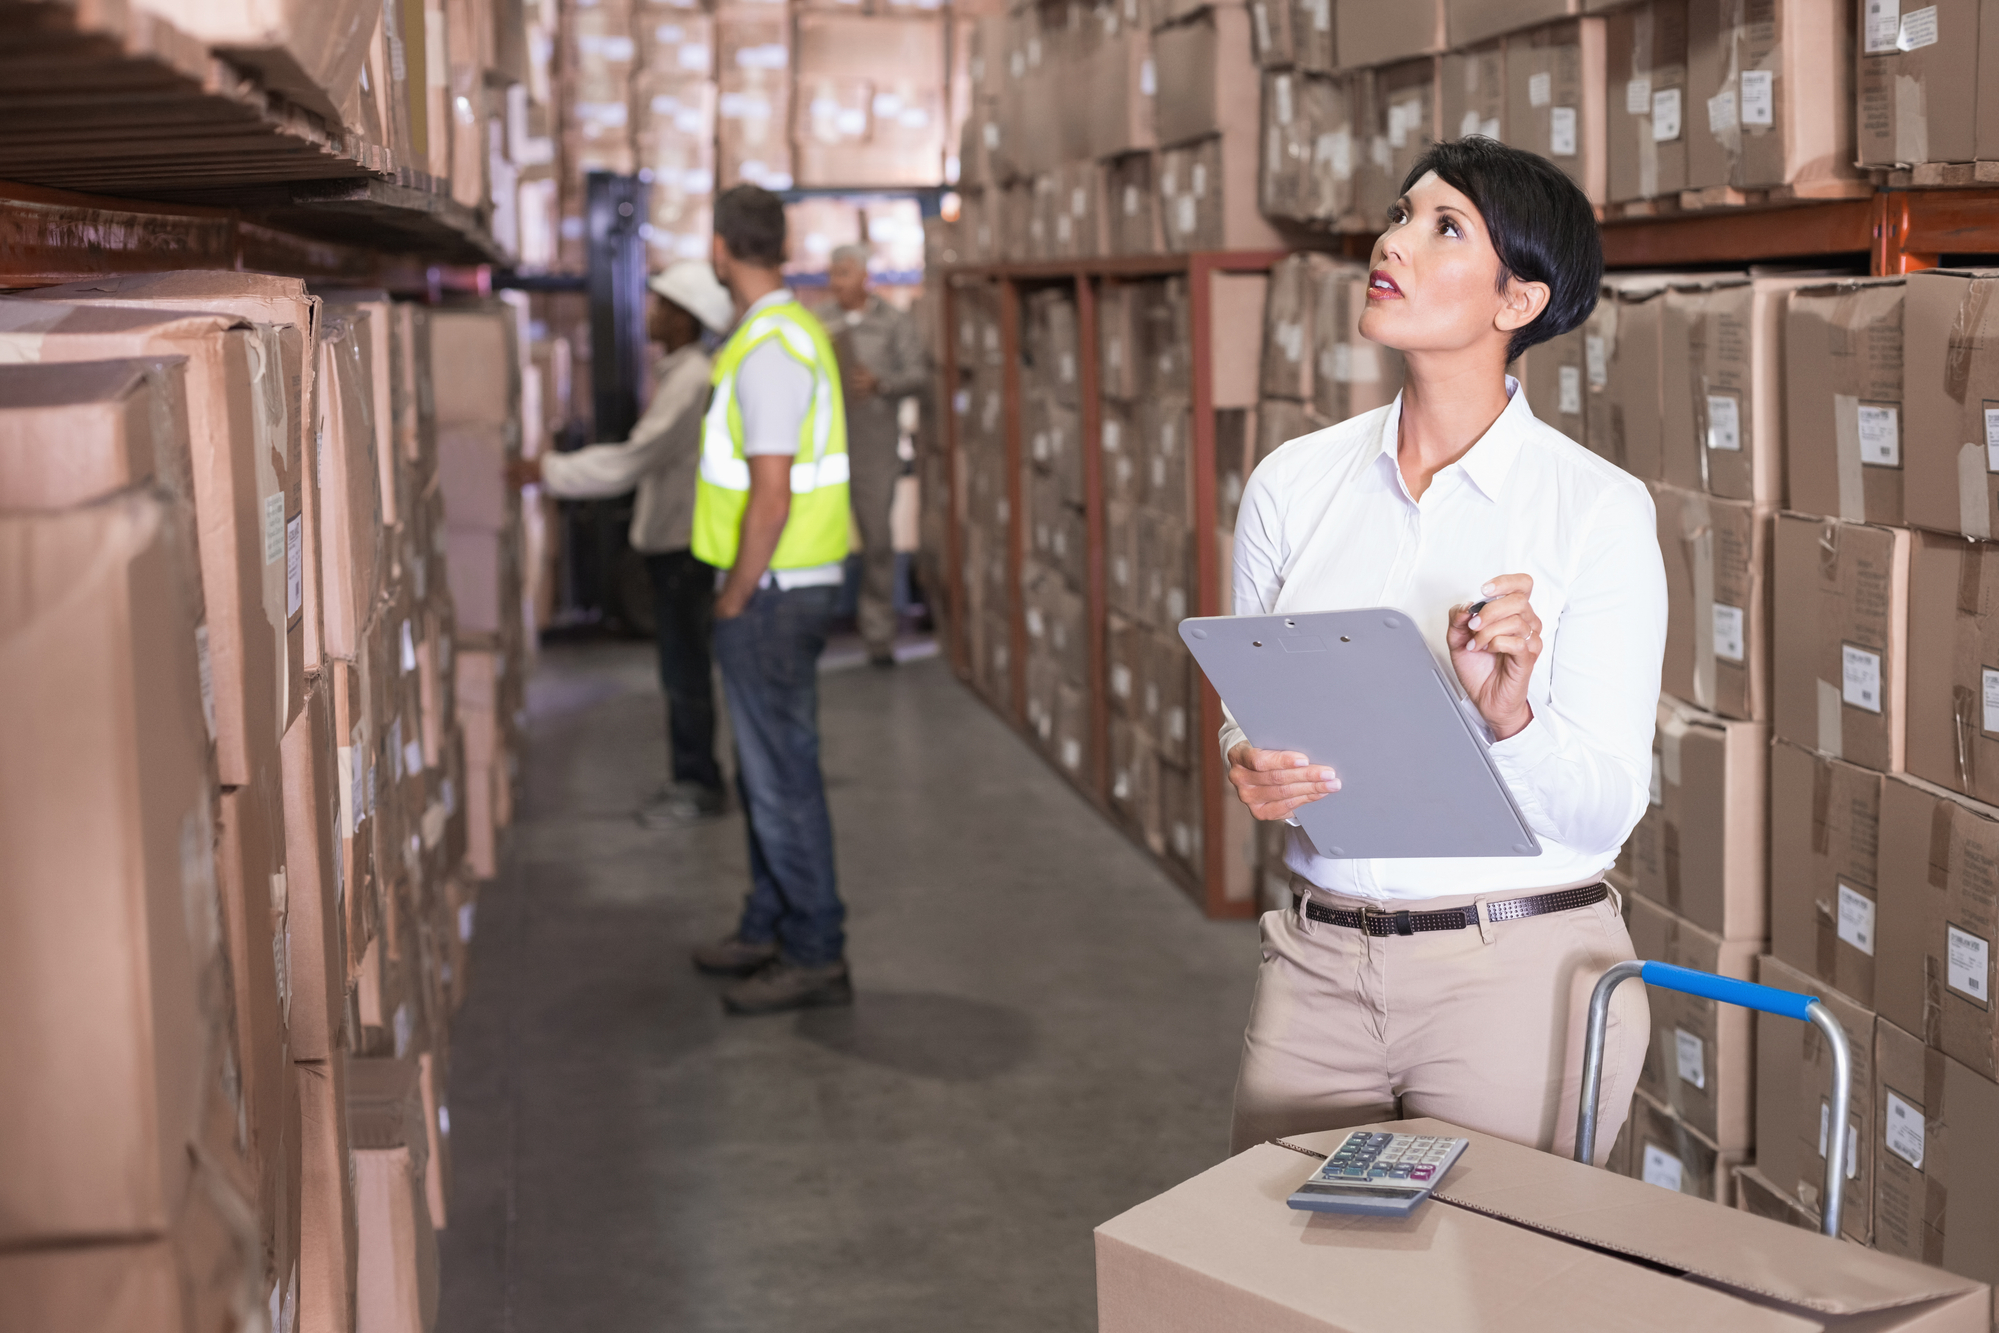 woman in warehouse inspecting inventory